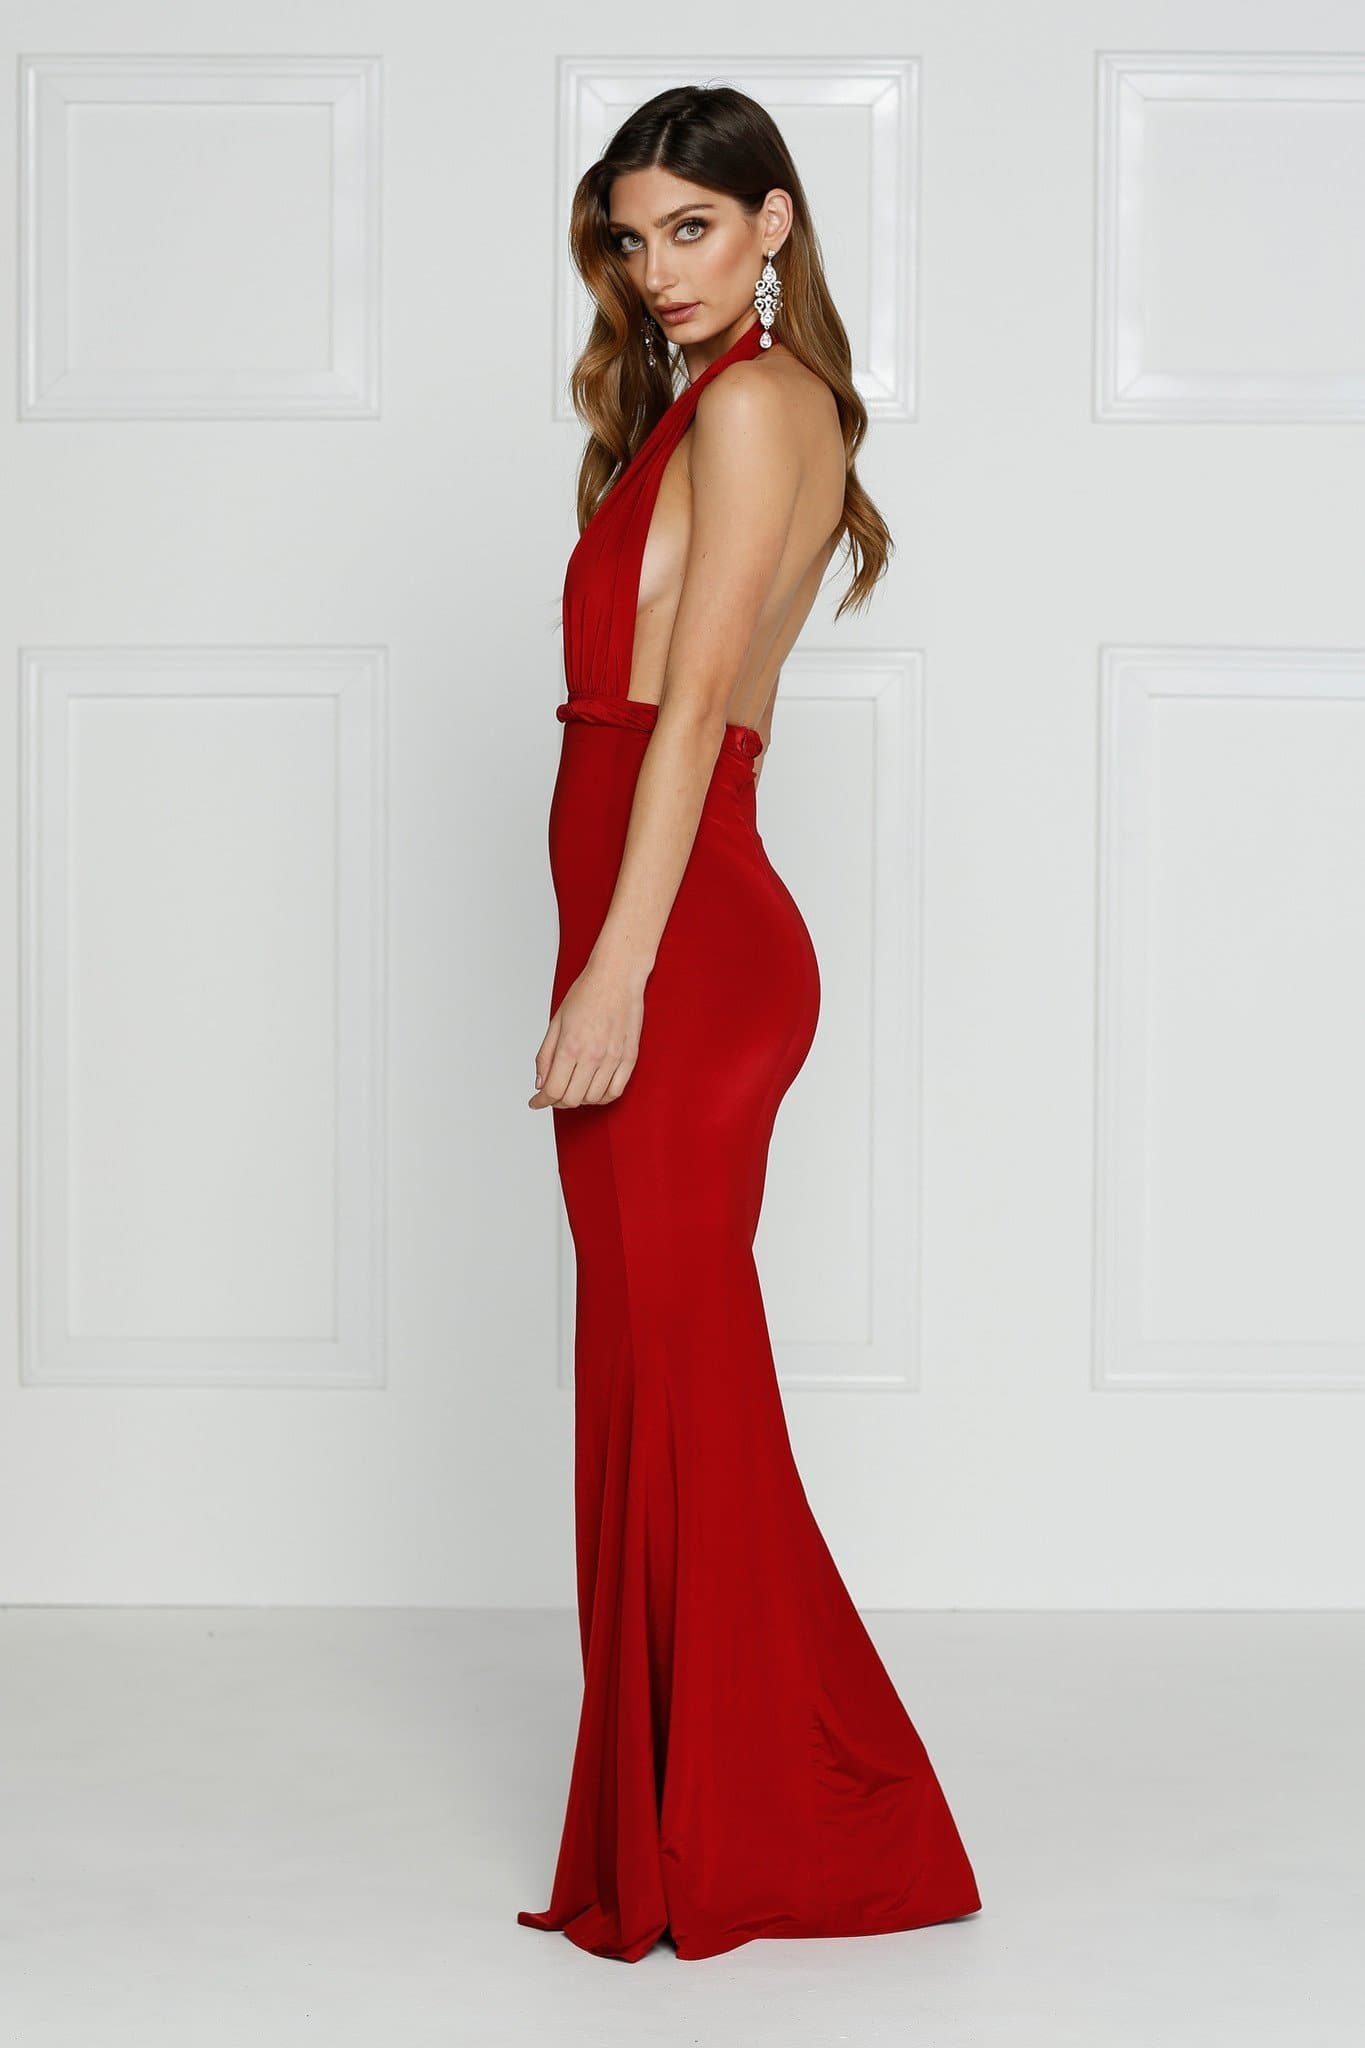 Florencia - Red Jersey Gown with Plunging Neckline & Low Back